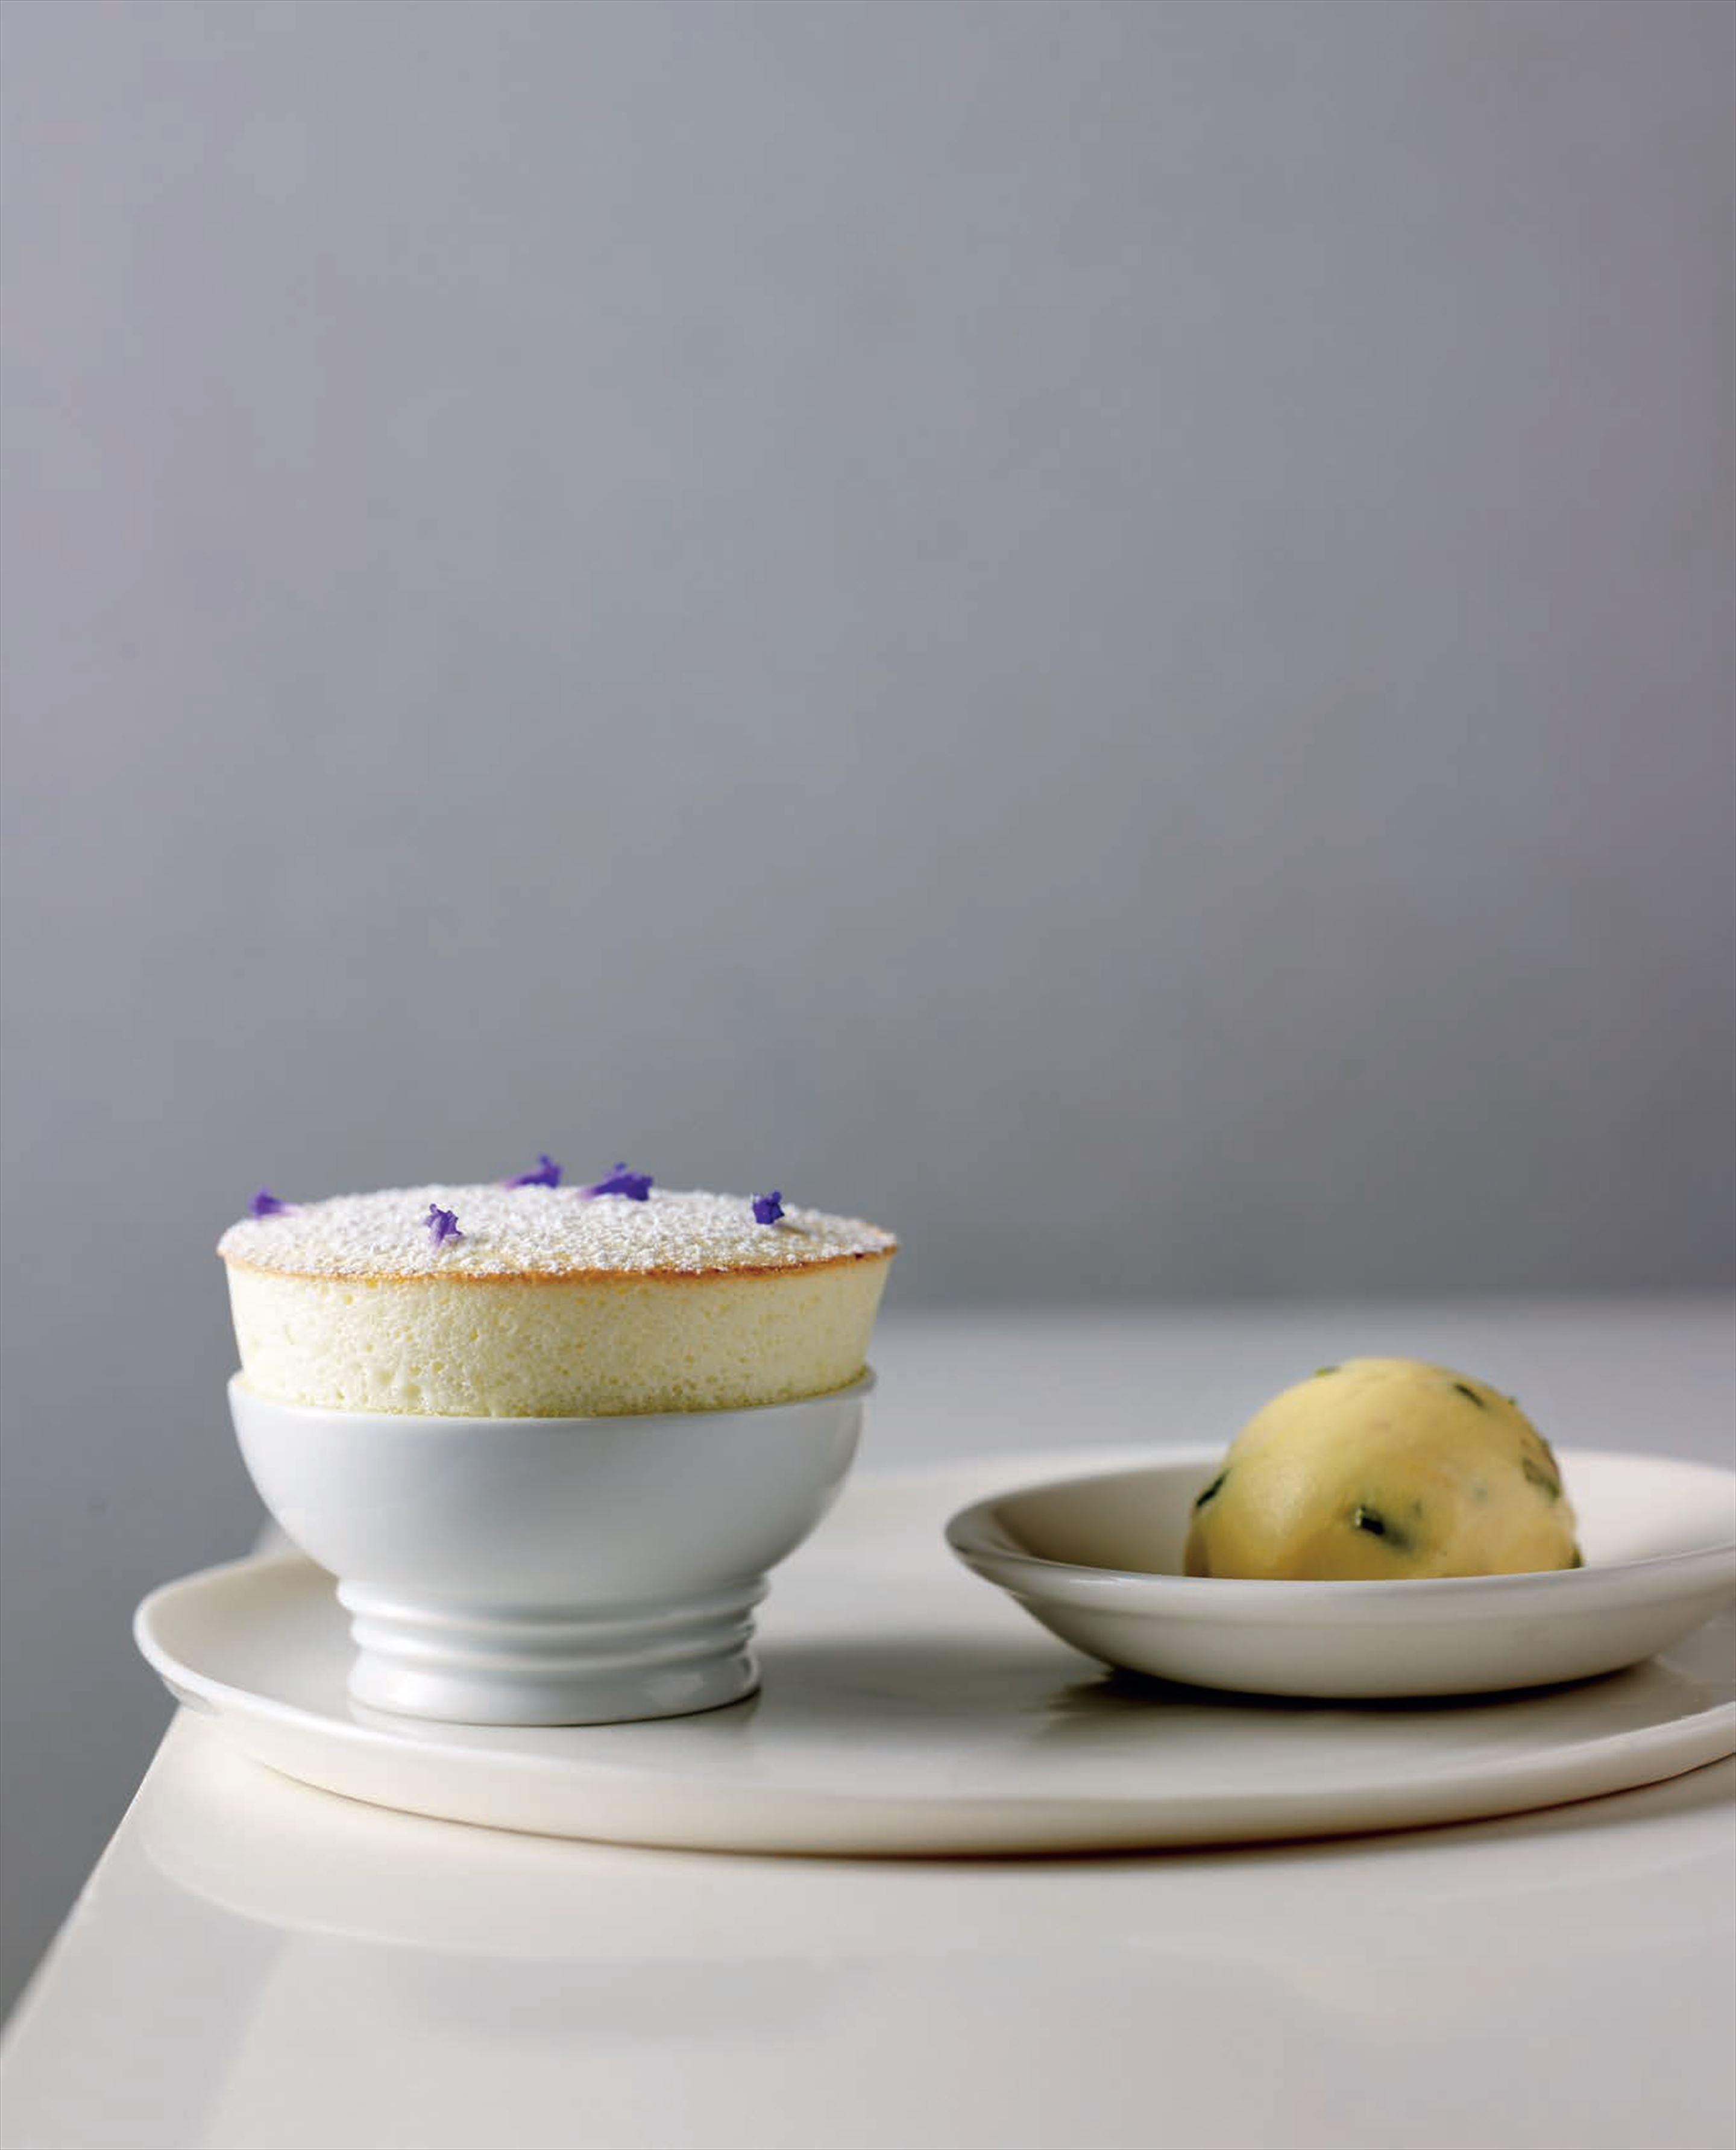 Green apple soufflé with pistachio-halva ice cream